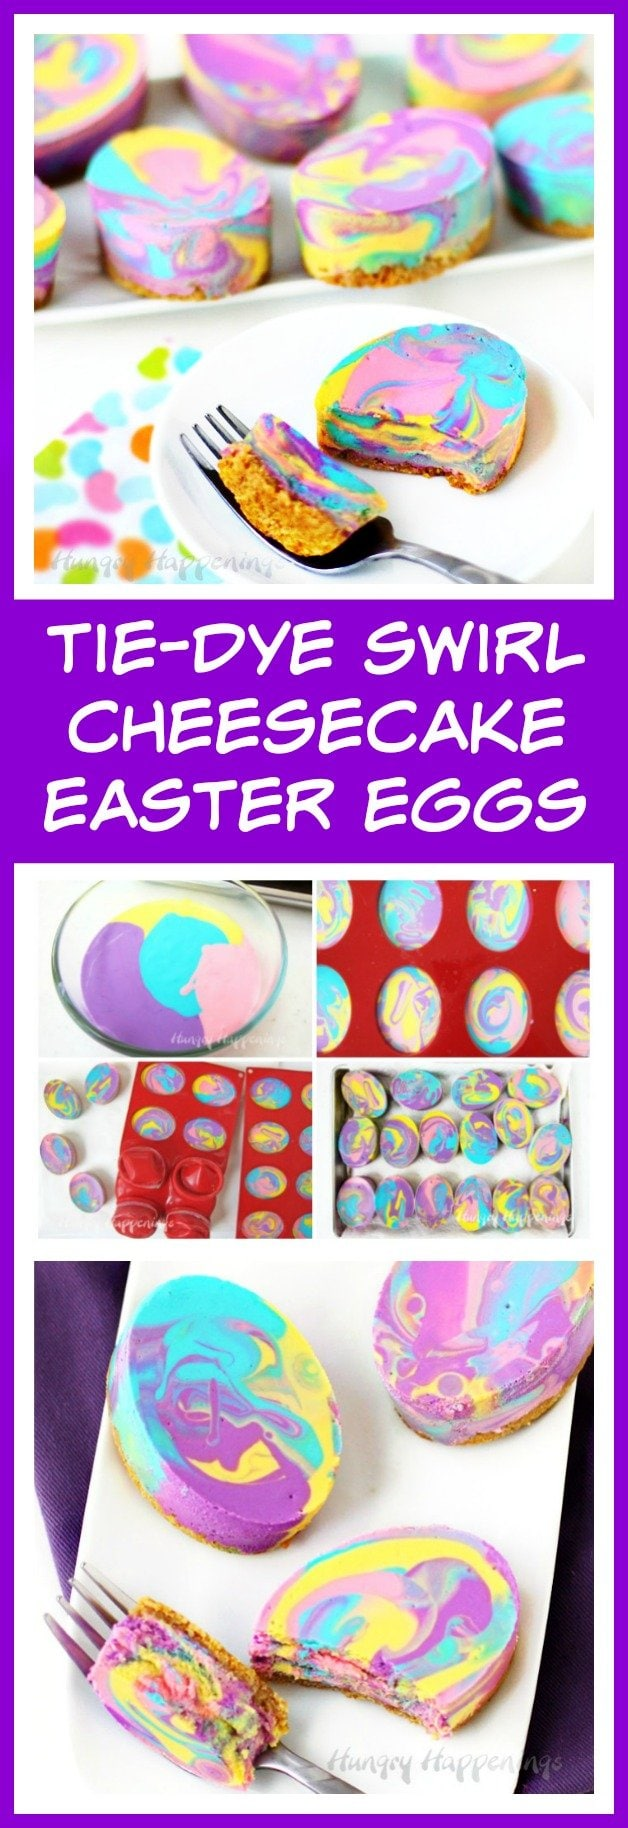 Colorful Tie-Dye Cheesecake Easter Eggs will brighten up your dessert table this holiday.